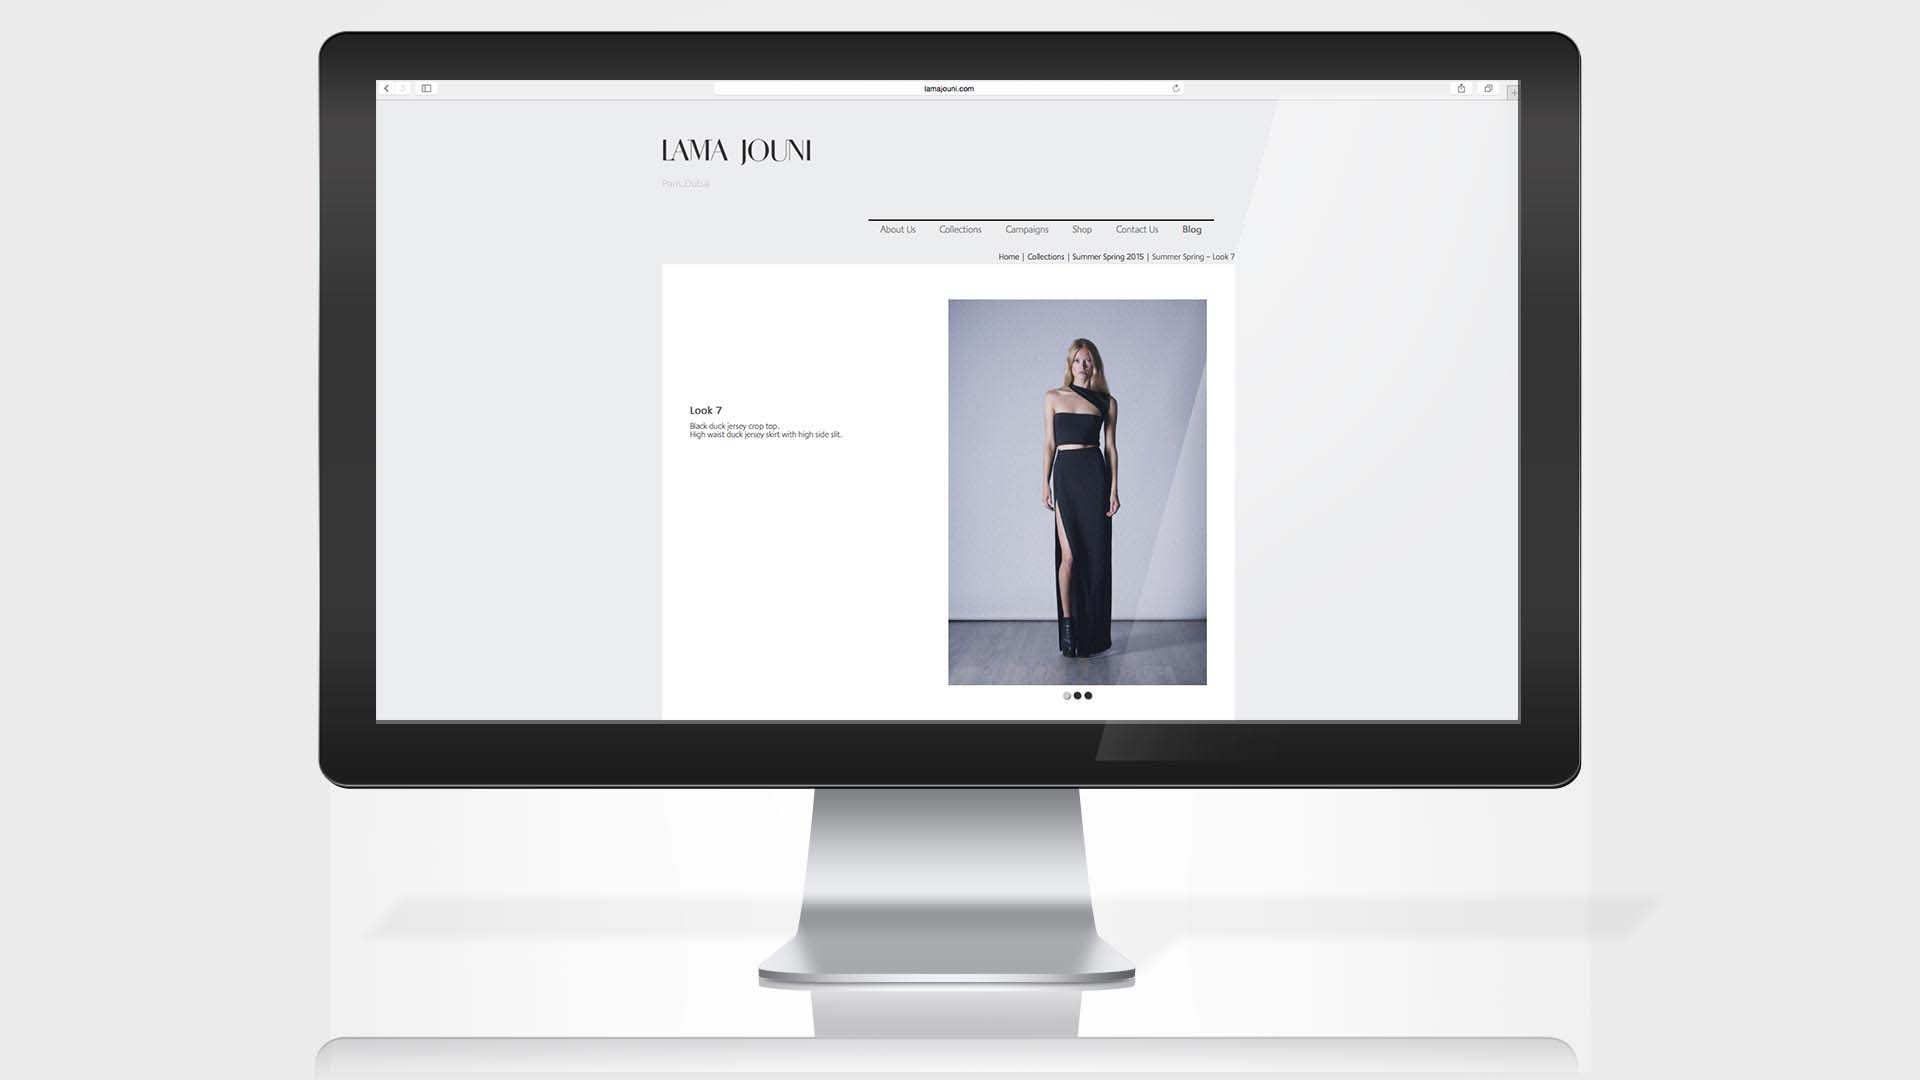 lama-jouni-website-Look-page